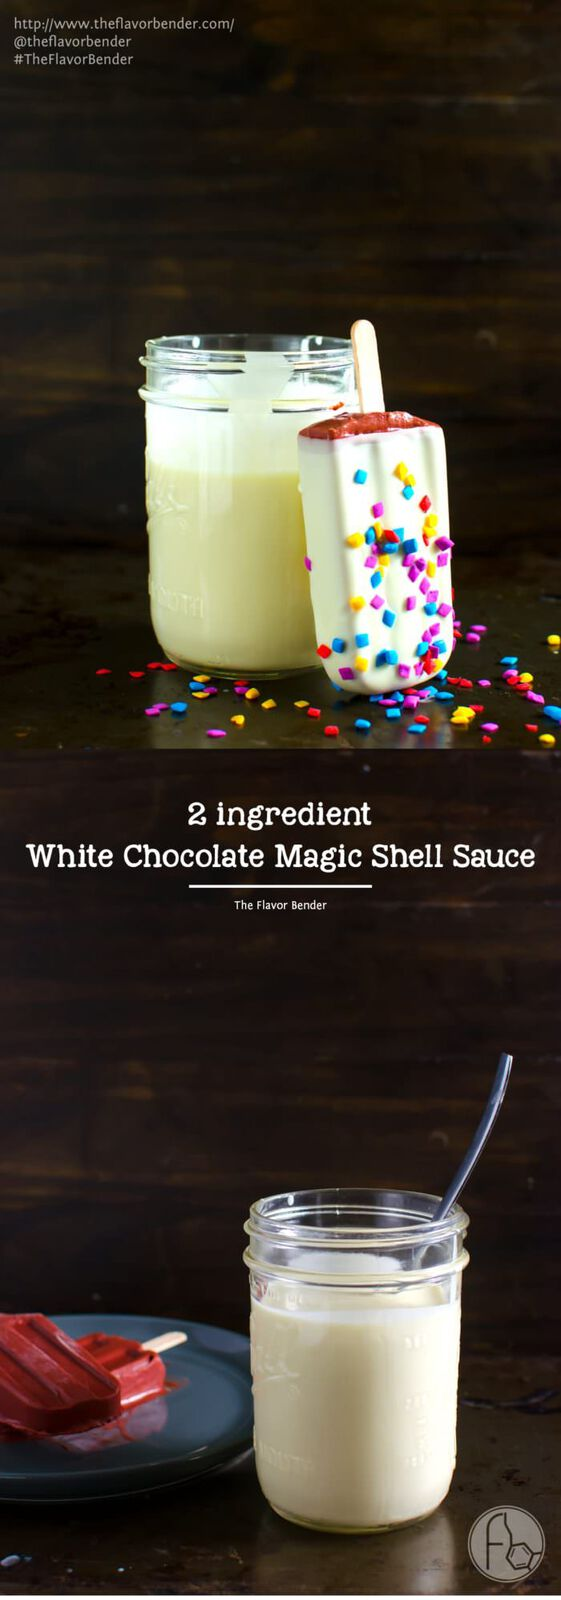 White Chocolate Magic Shell Sauce - Two ingredients, and one minute are all you need to make this easy White Chocolate Magic Shell Sauce and transform all your cold desserts with a little bit of creamy white chocolate awesomeness!